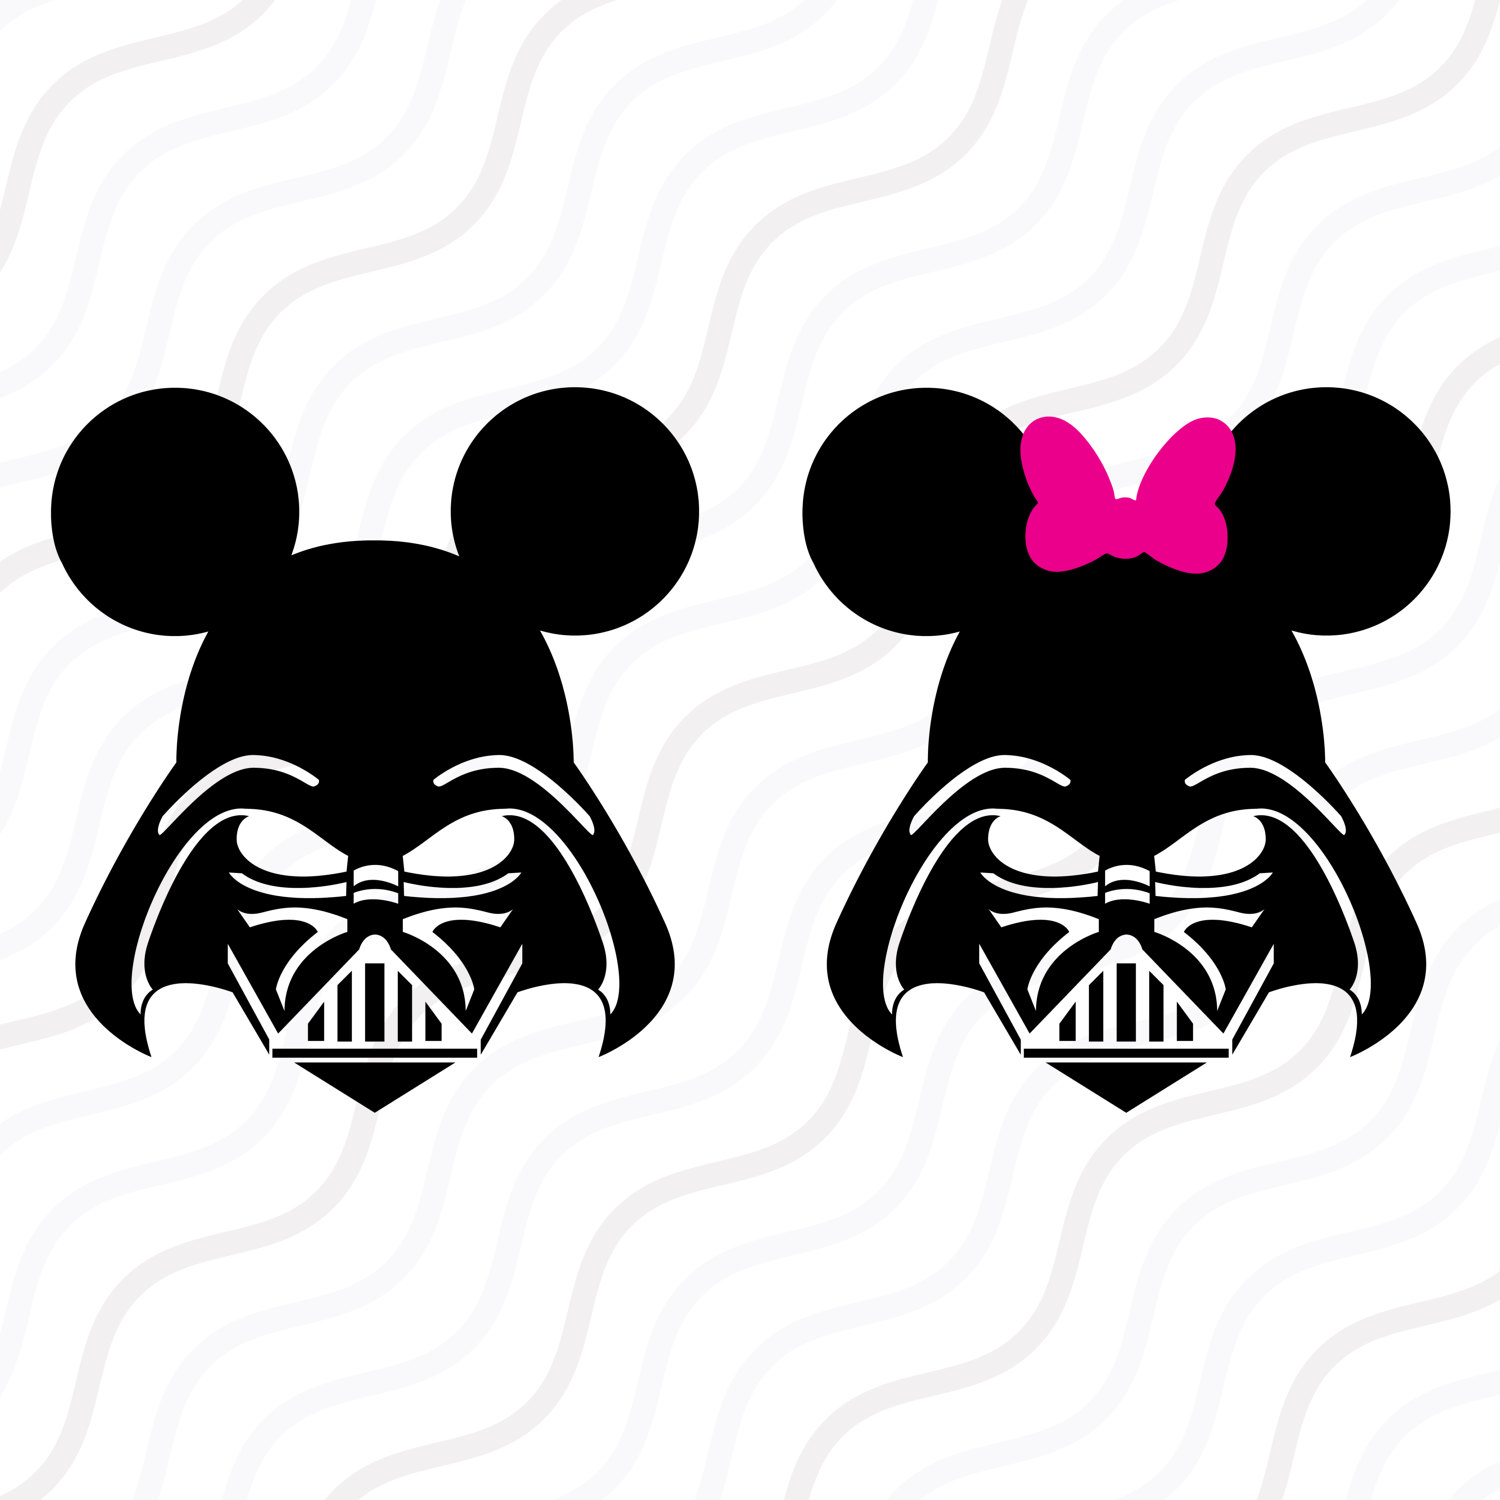 Darth Vader clipart #2, Download drawings